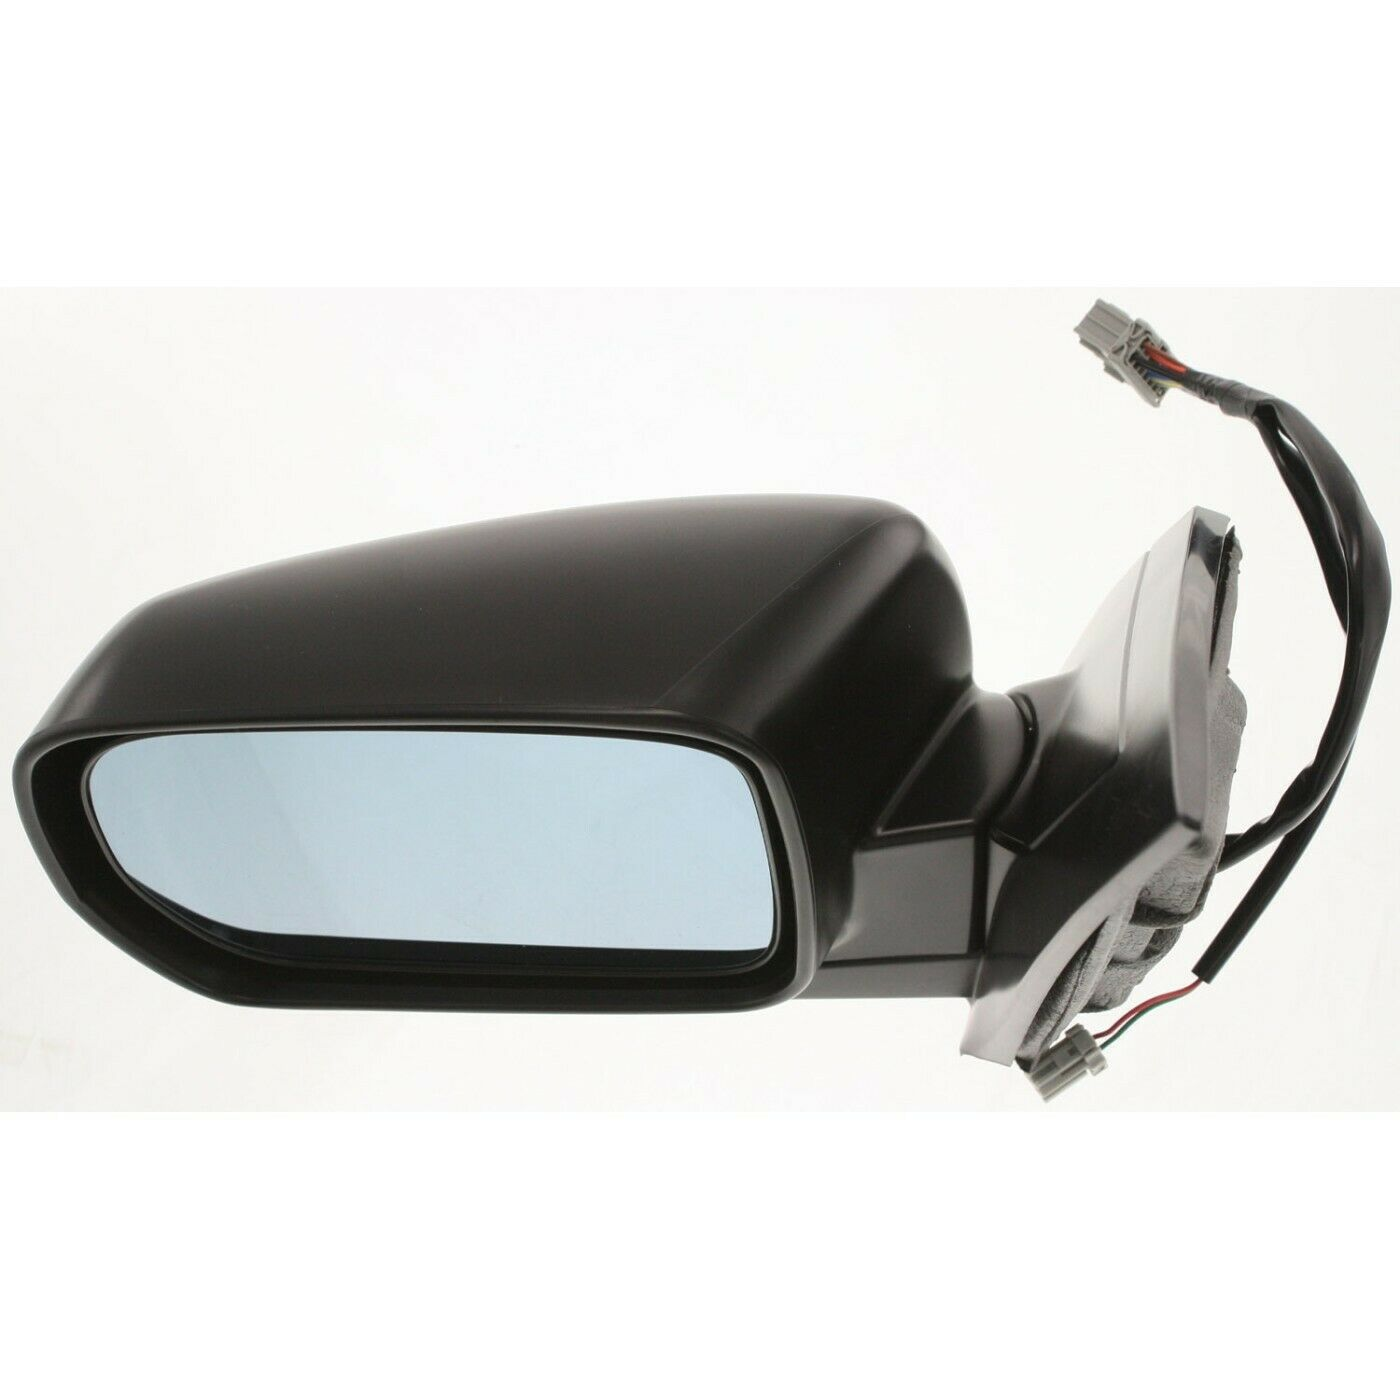 Power Driver Left Side Mirror For 2002-2006 Acura MDX